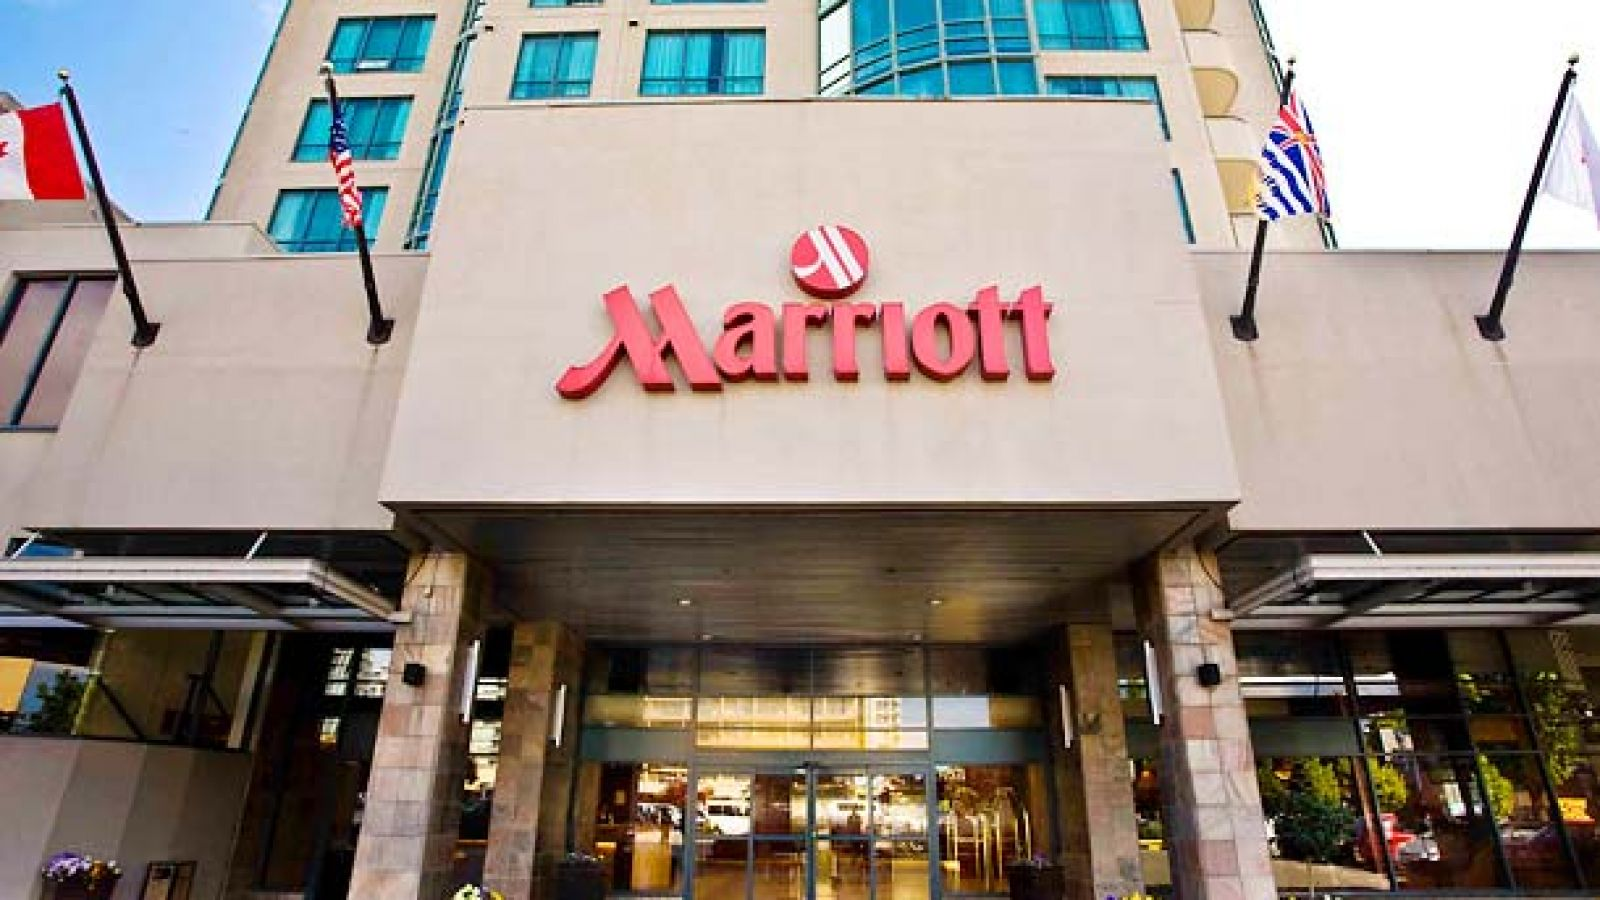 Vancouver Airport Marriott Hotel - Front View